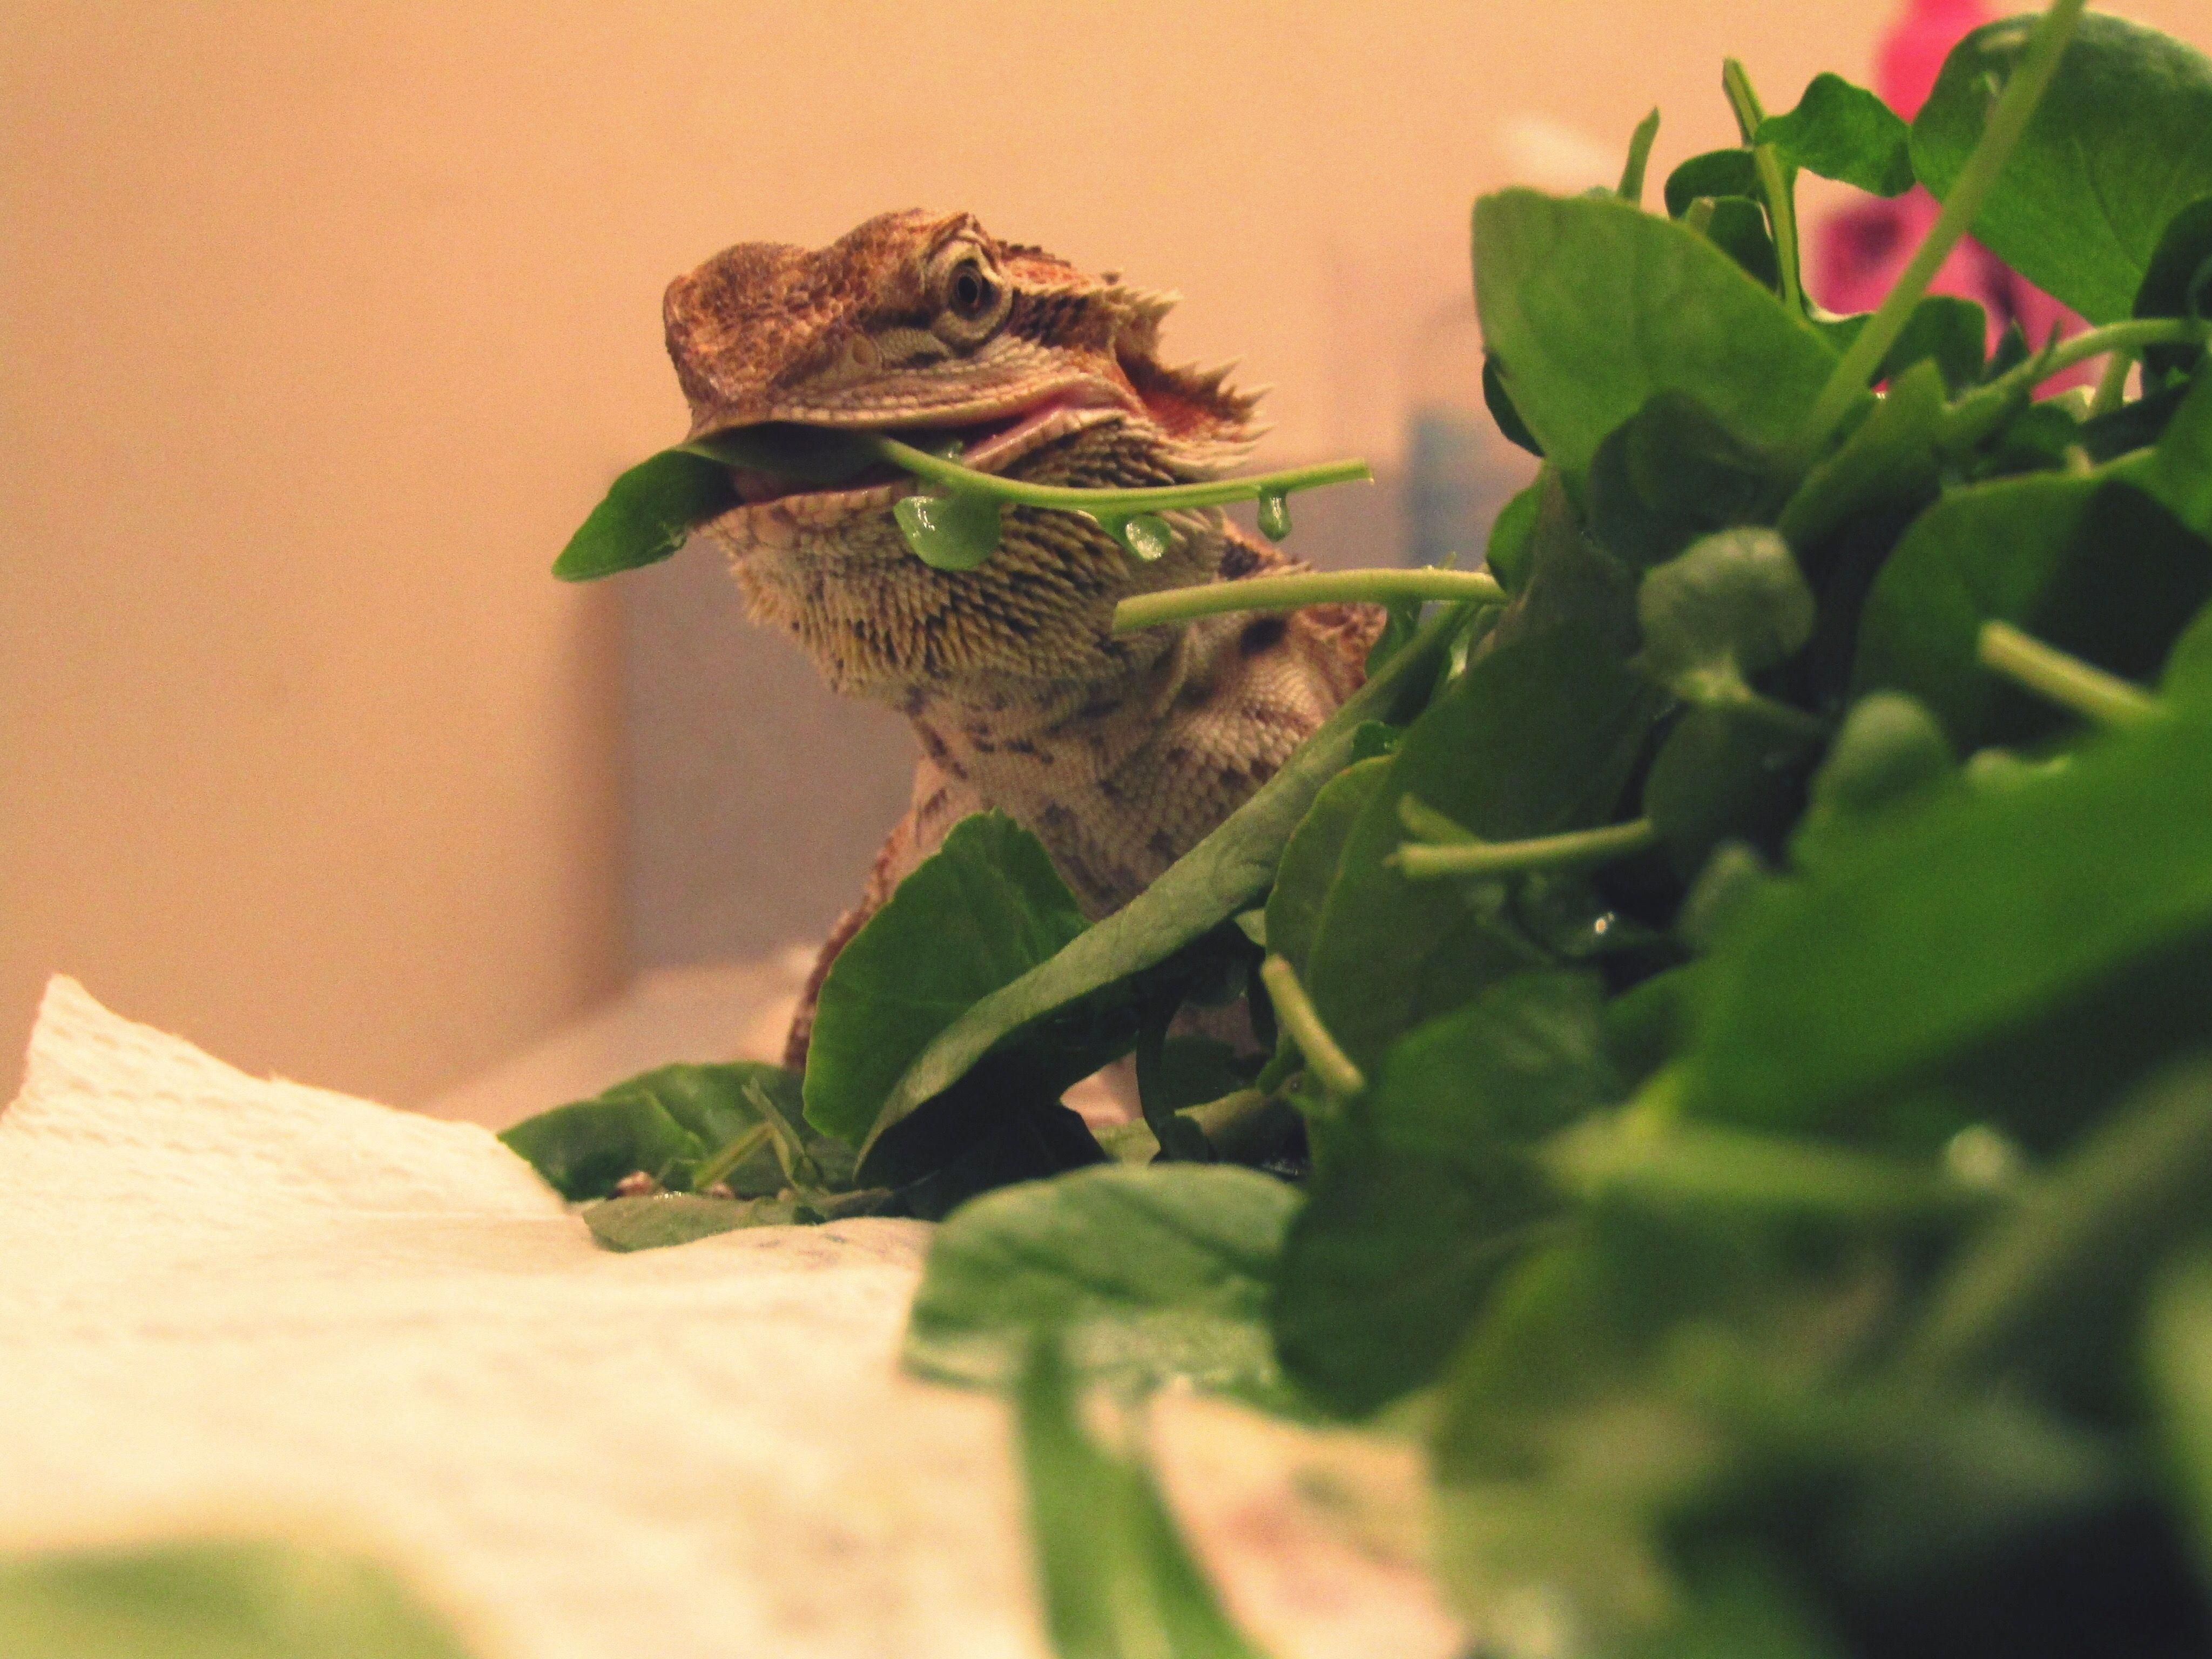 Bearded dragons need leafy greens daily as part of a